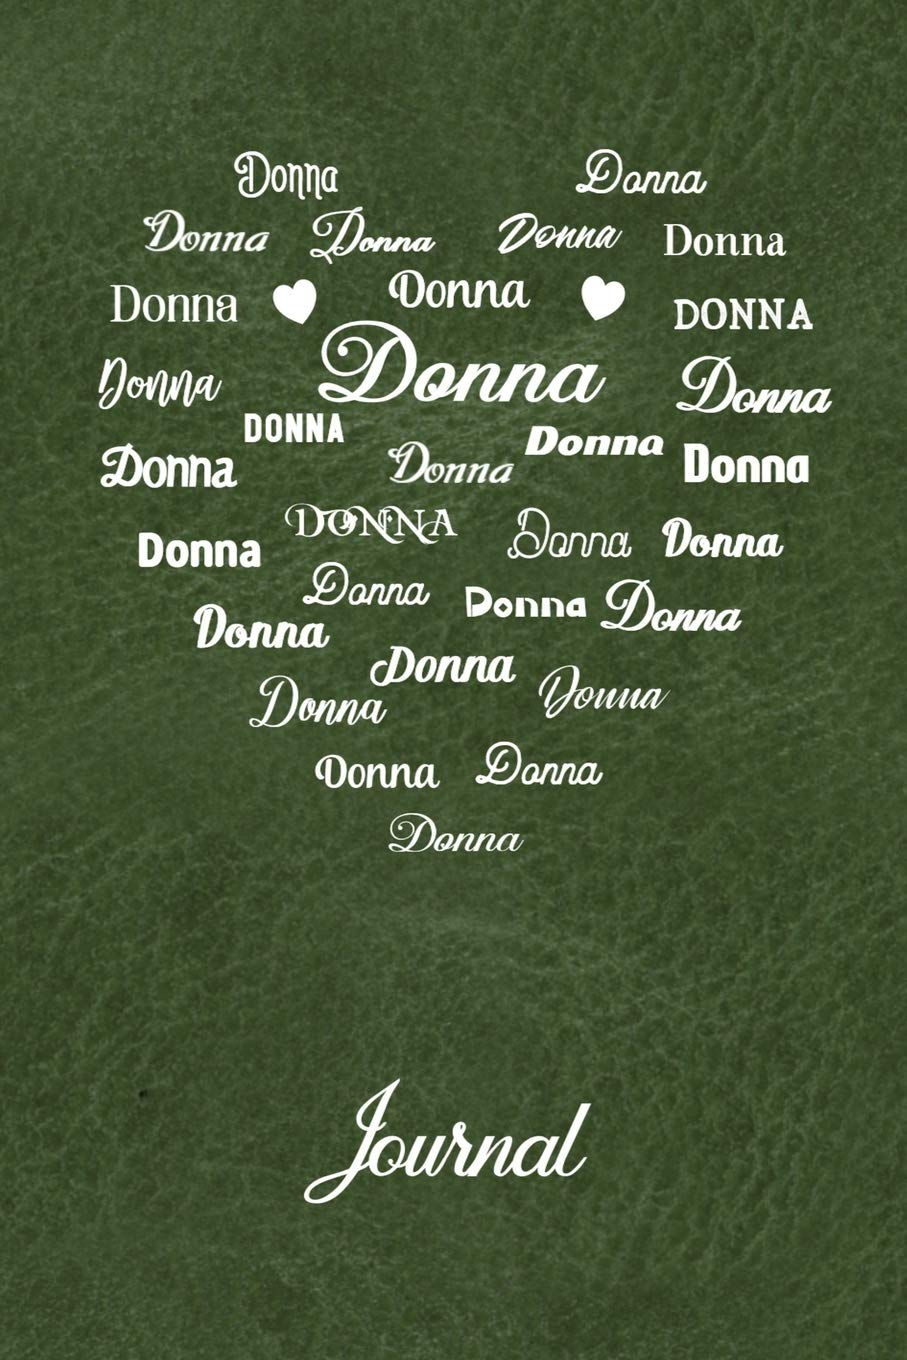 Buy Personalized Journal Donna Name In Many Different Fonts In Heart Shape On Olive Green Leather Look Background Book Online At Low Prices In India Personalized Journal Donna Name,What Color To Paint Exposed Basement Ceiling